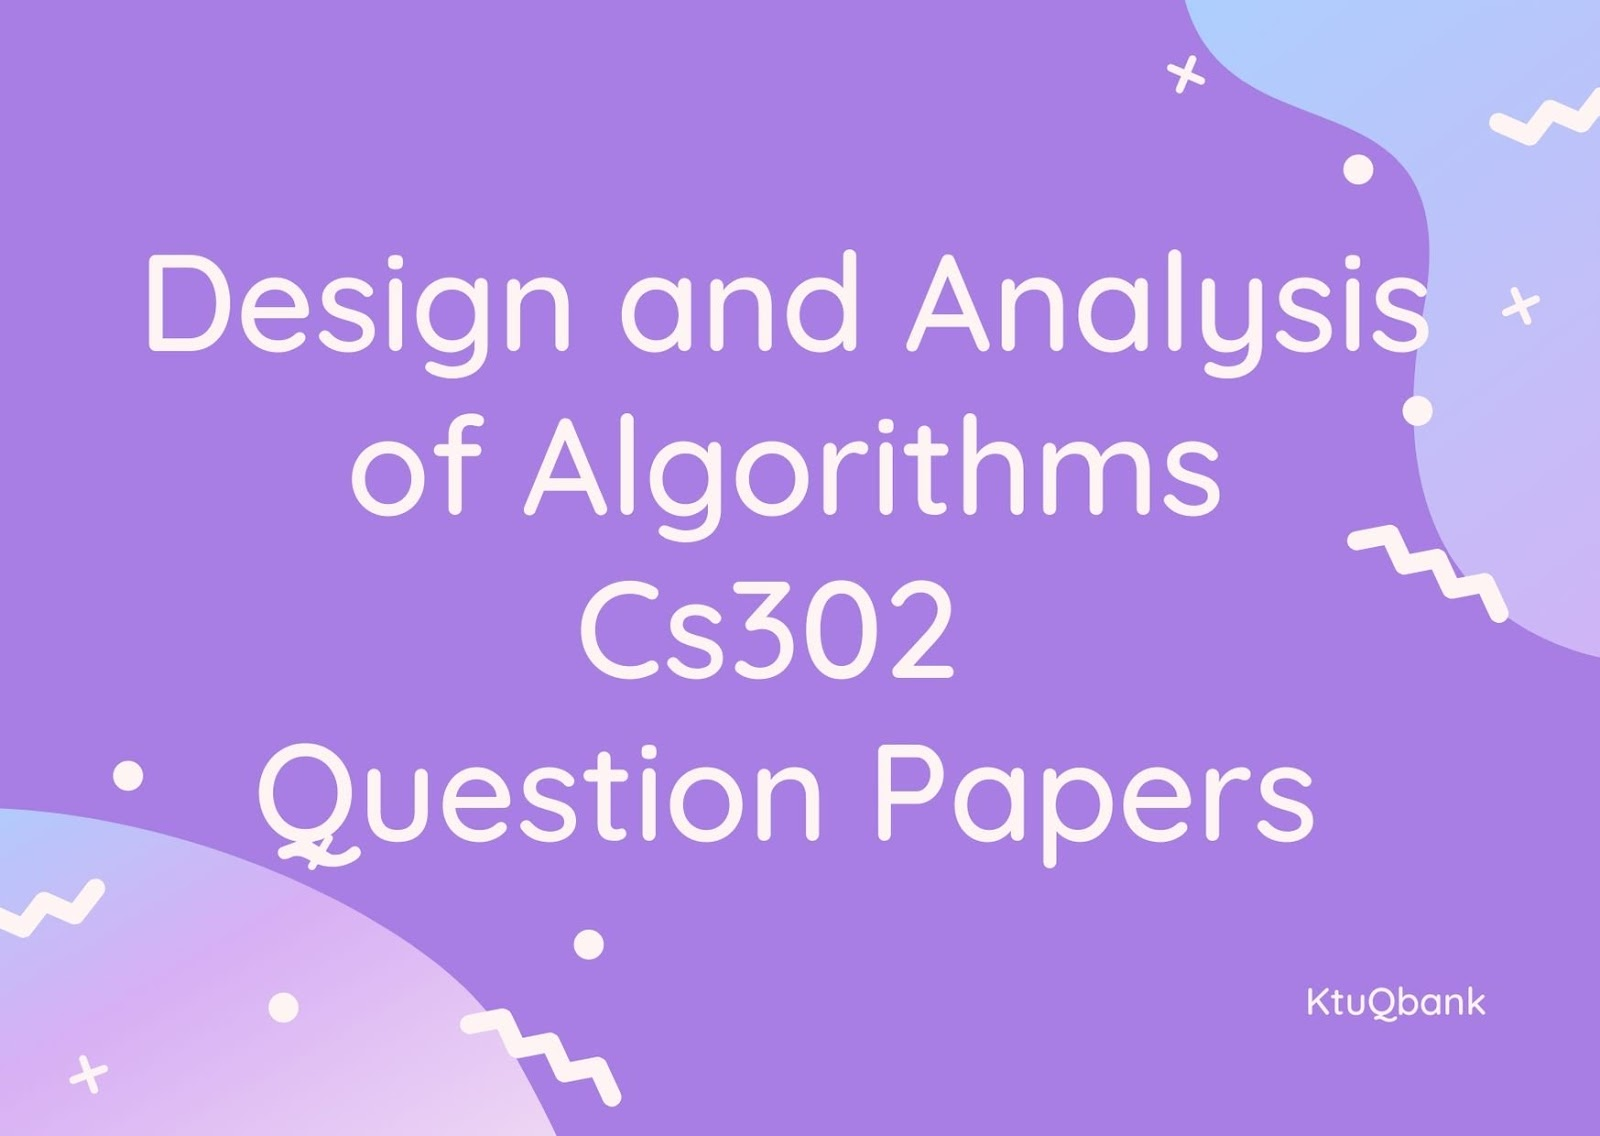 Design and Analysis of Algorithms | CS302 | Question Papers (2015 batch)